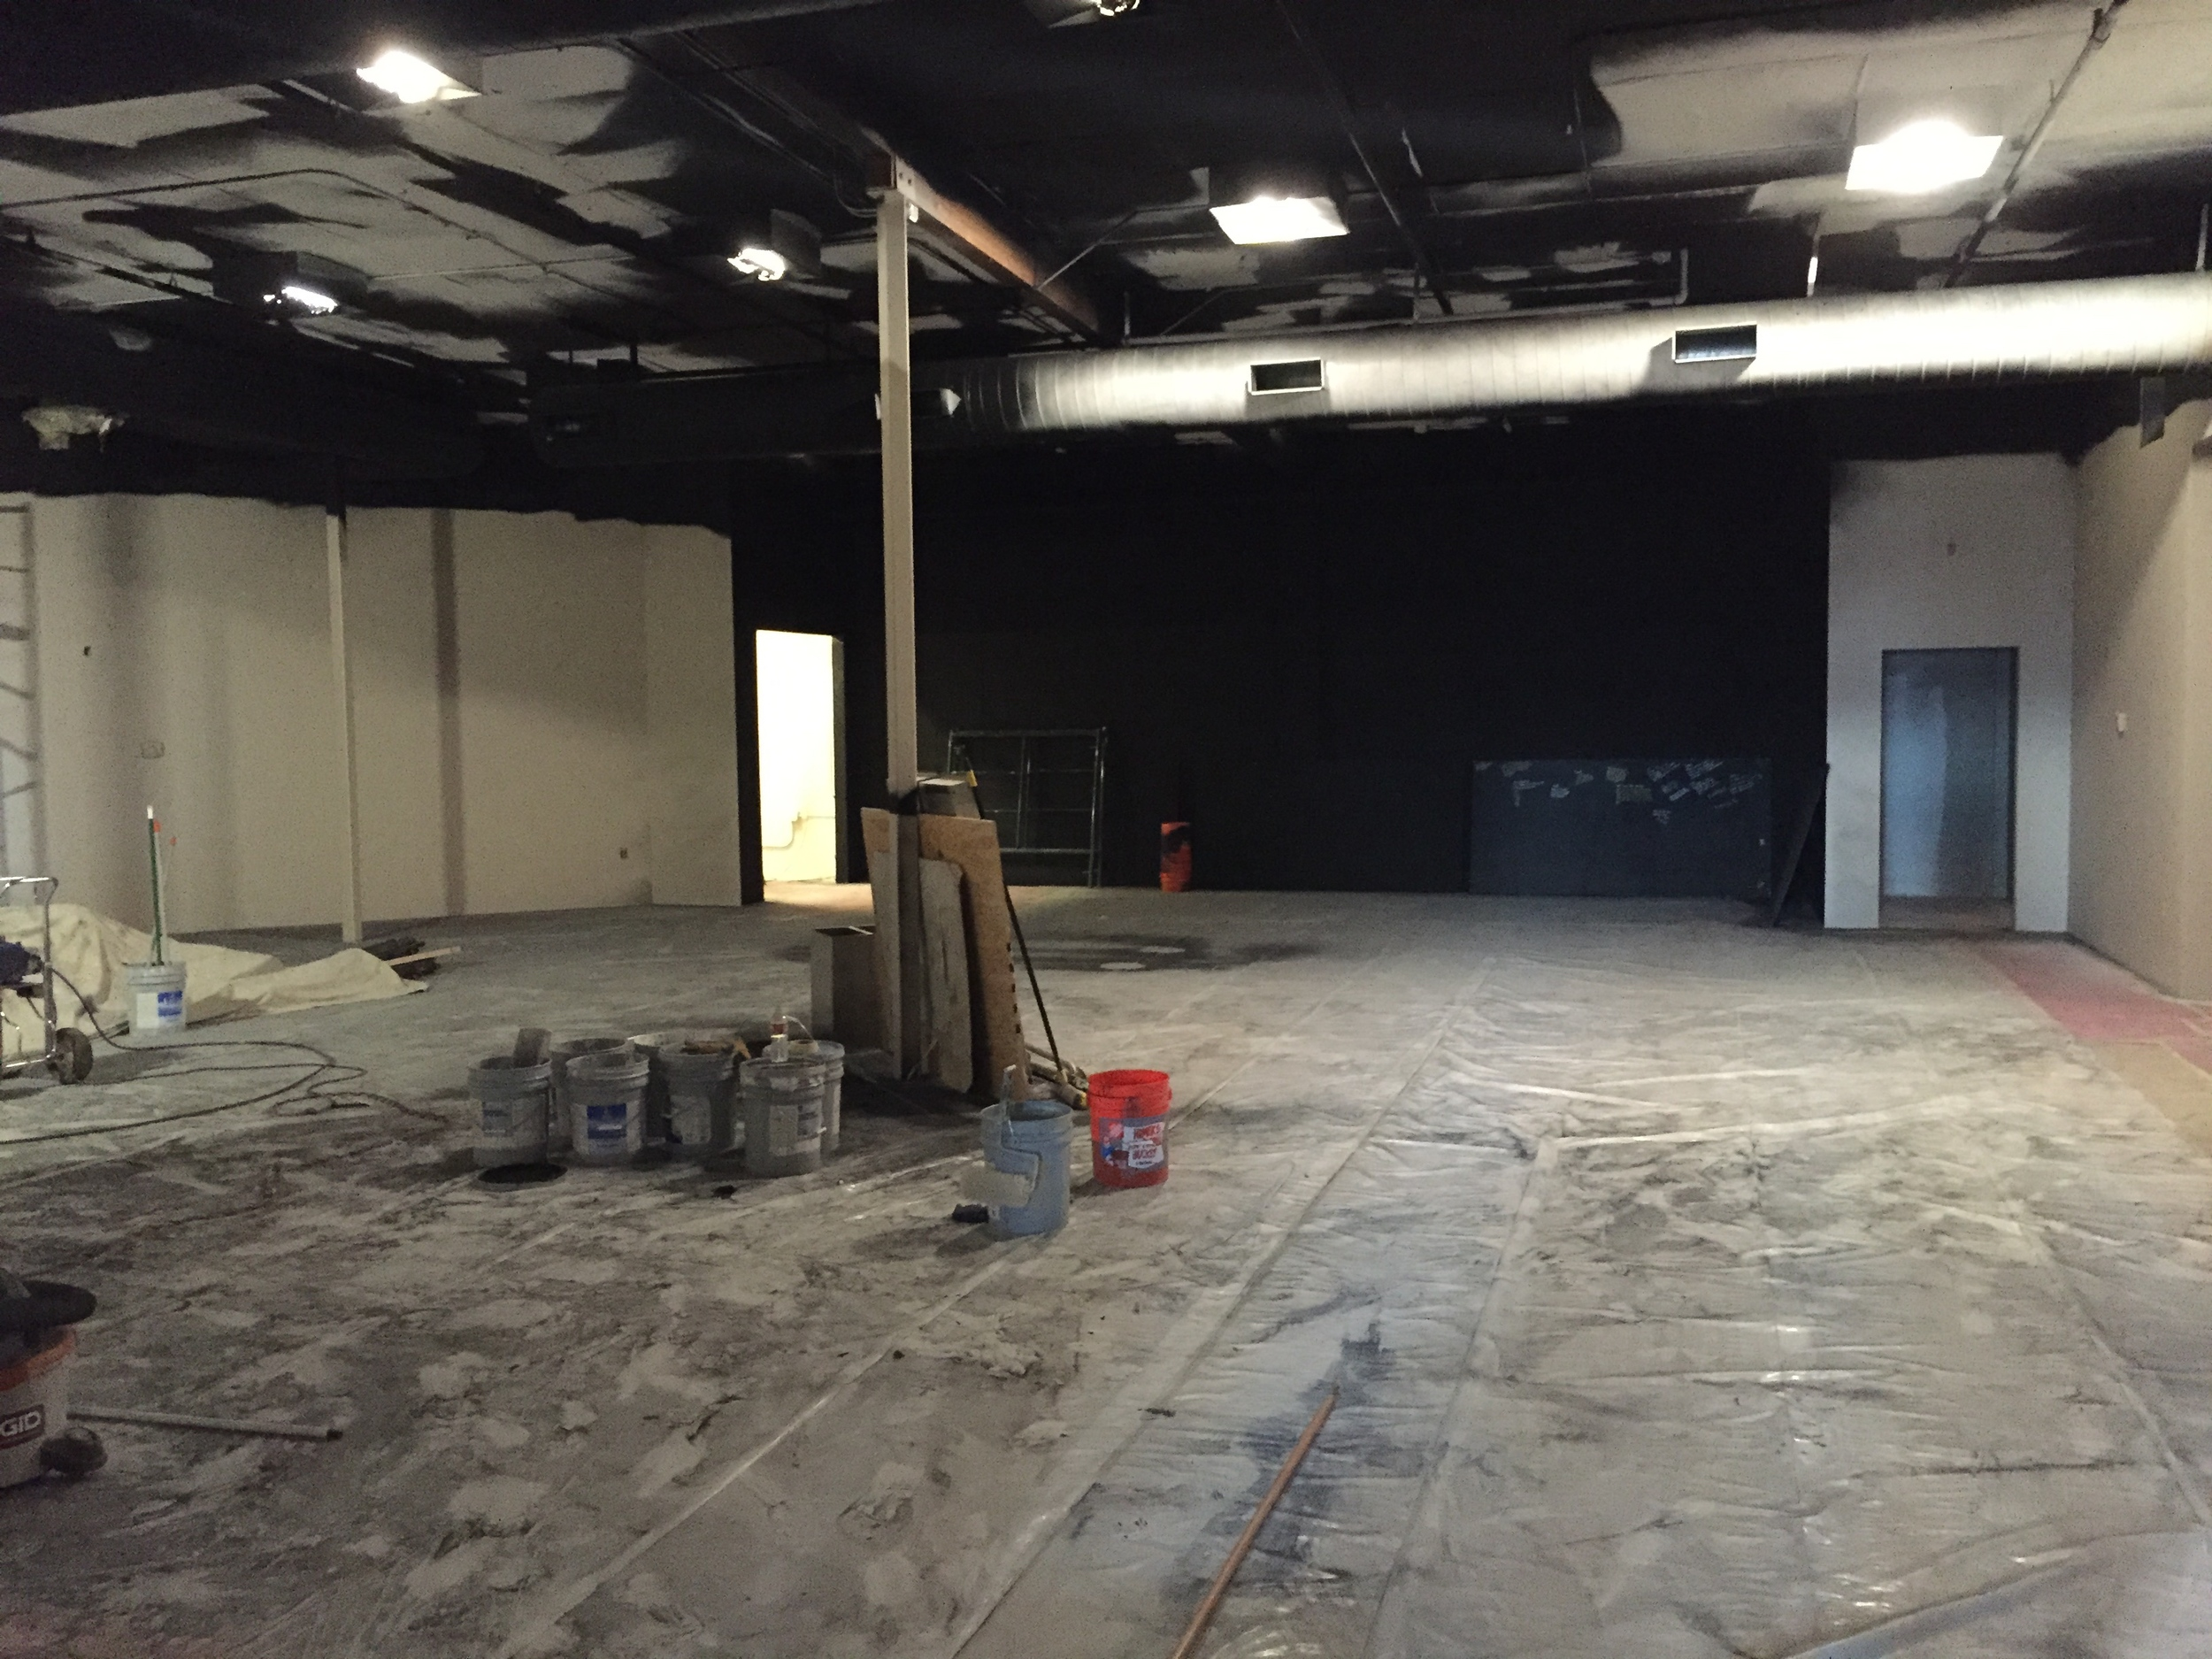 Looking toward the stage from the auditorium entry doors.